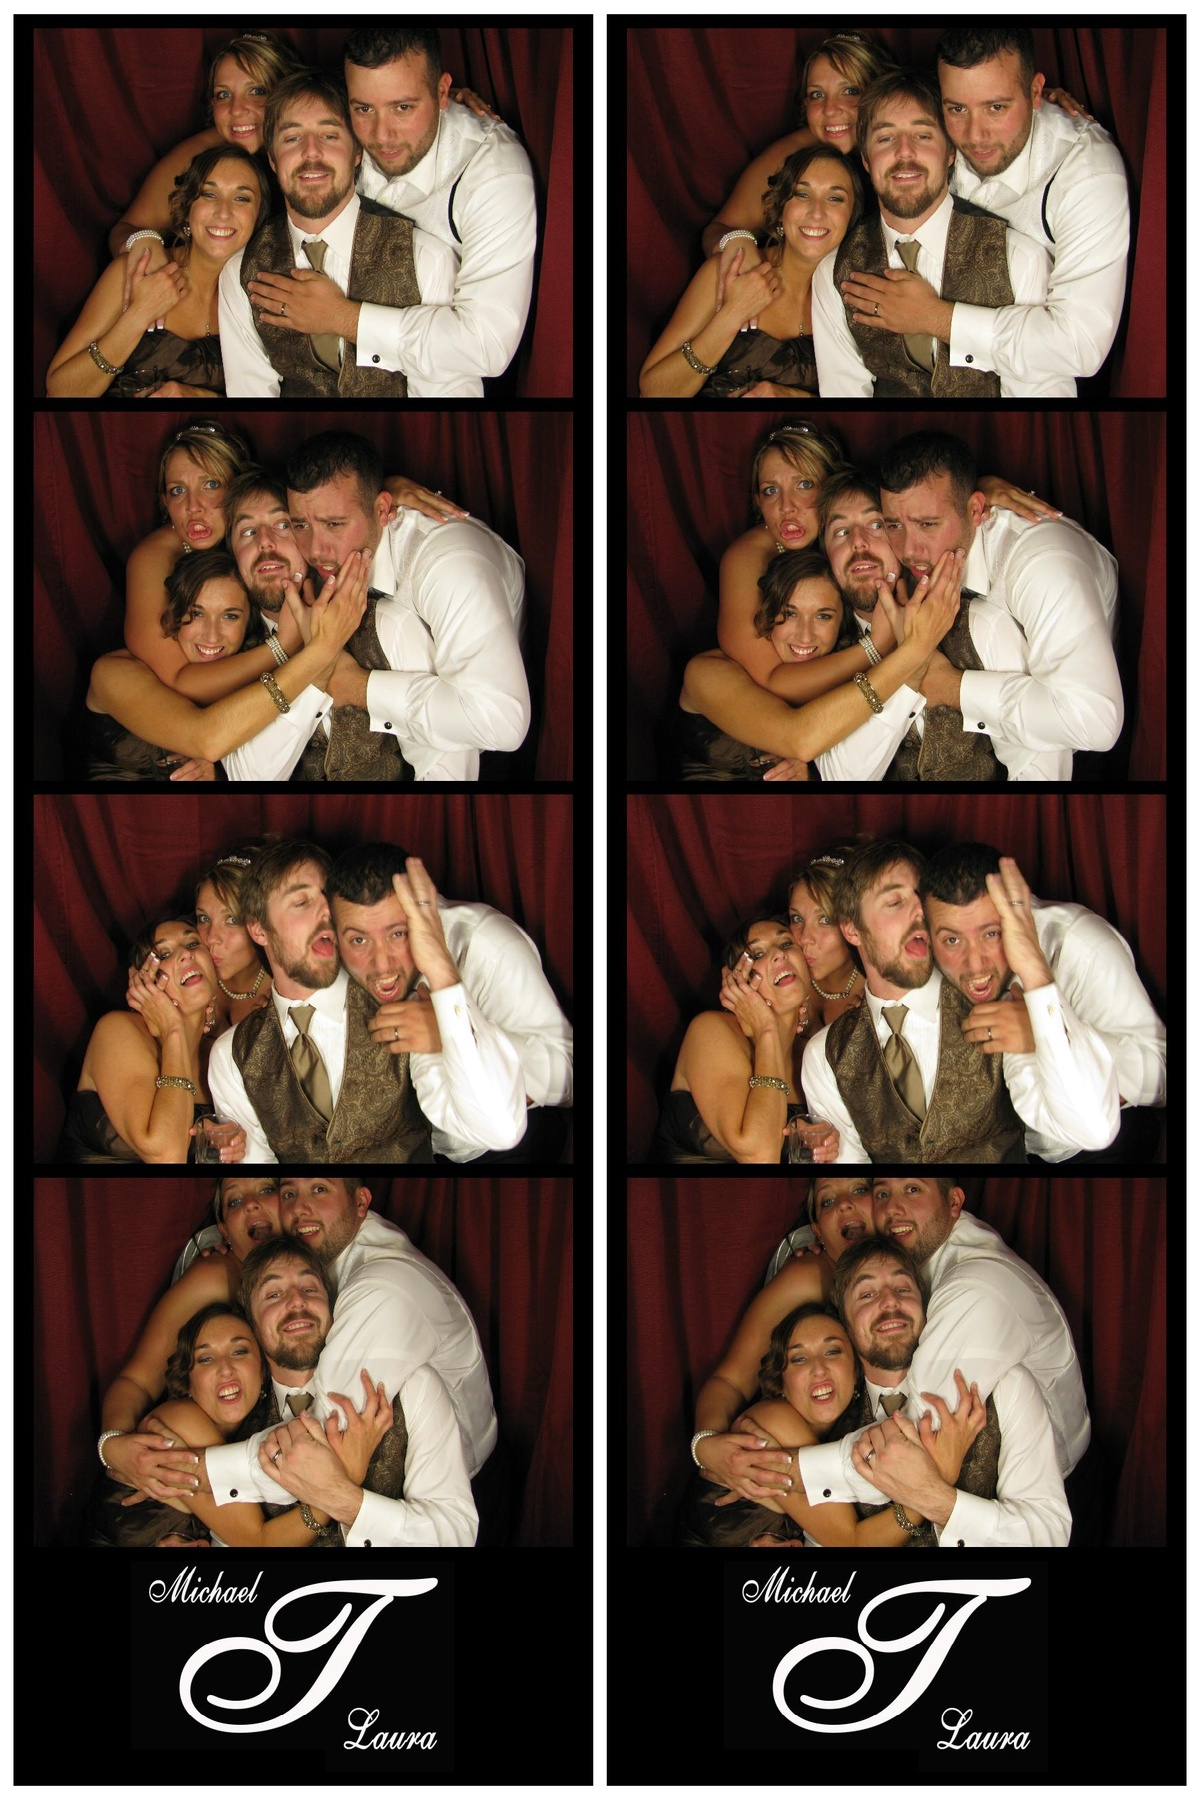 Michael & Laura's wedding fun - Snapshot Photobooths NJ Photo Booth Rentals